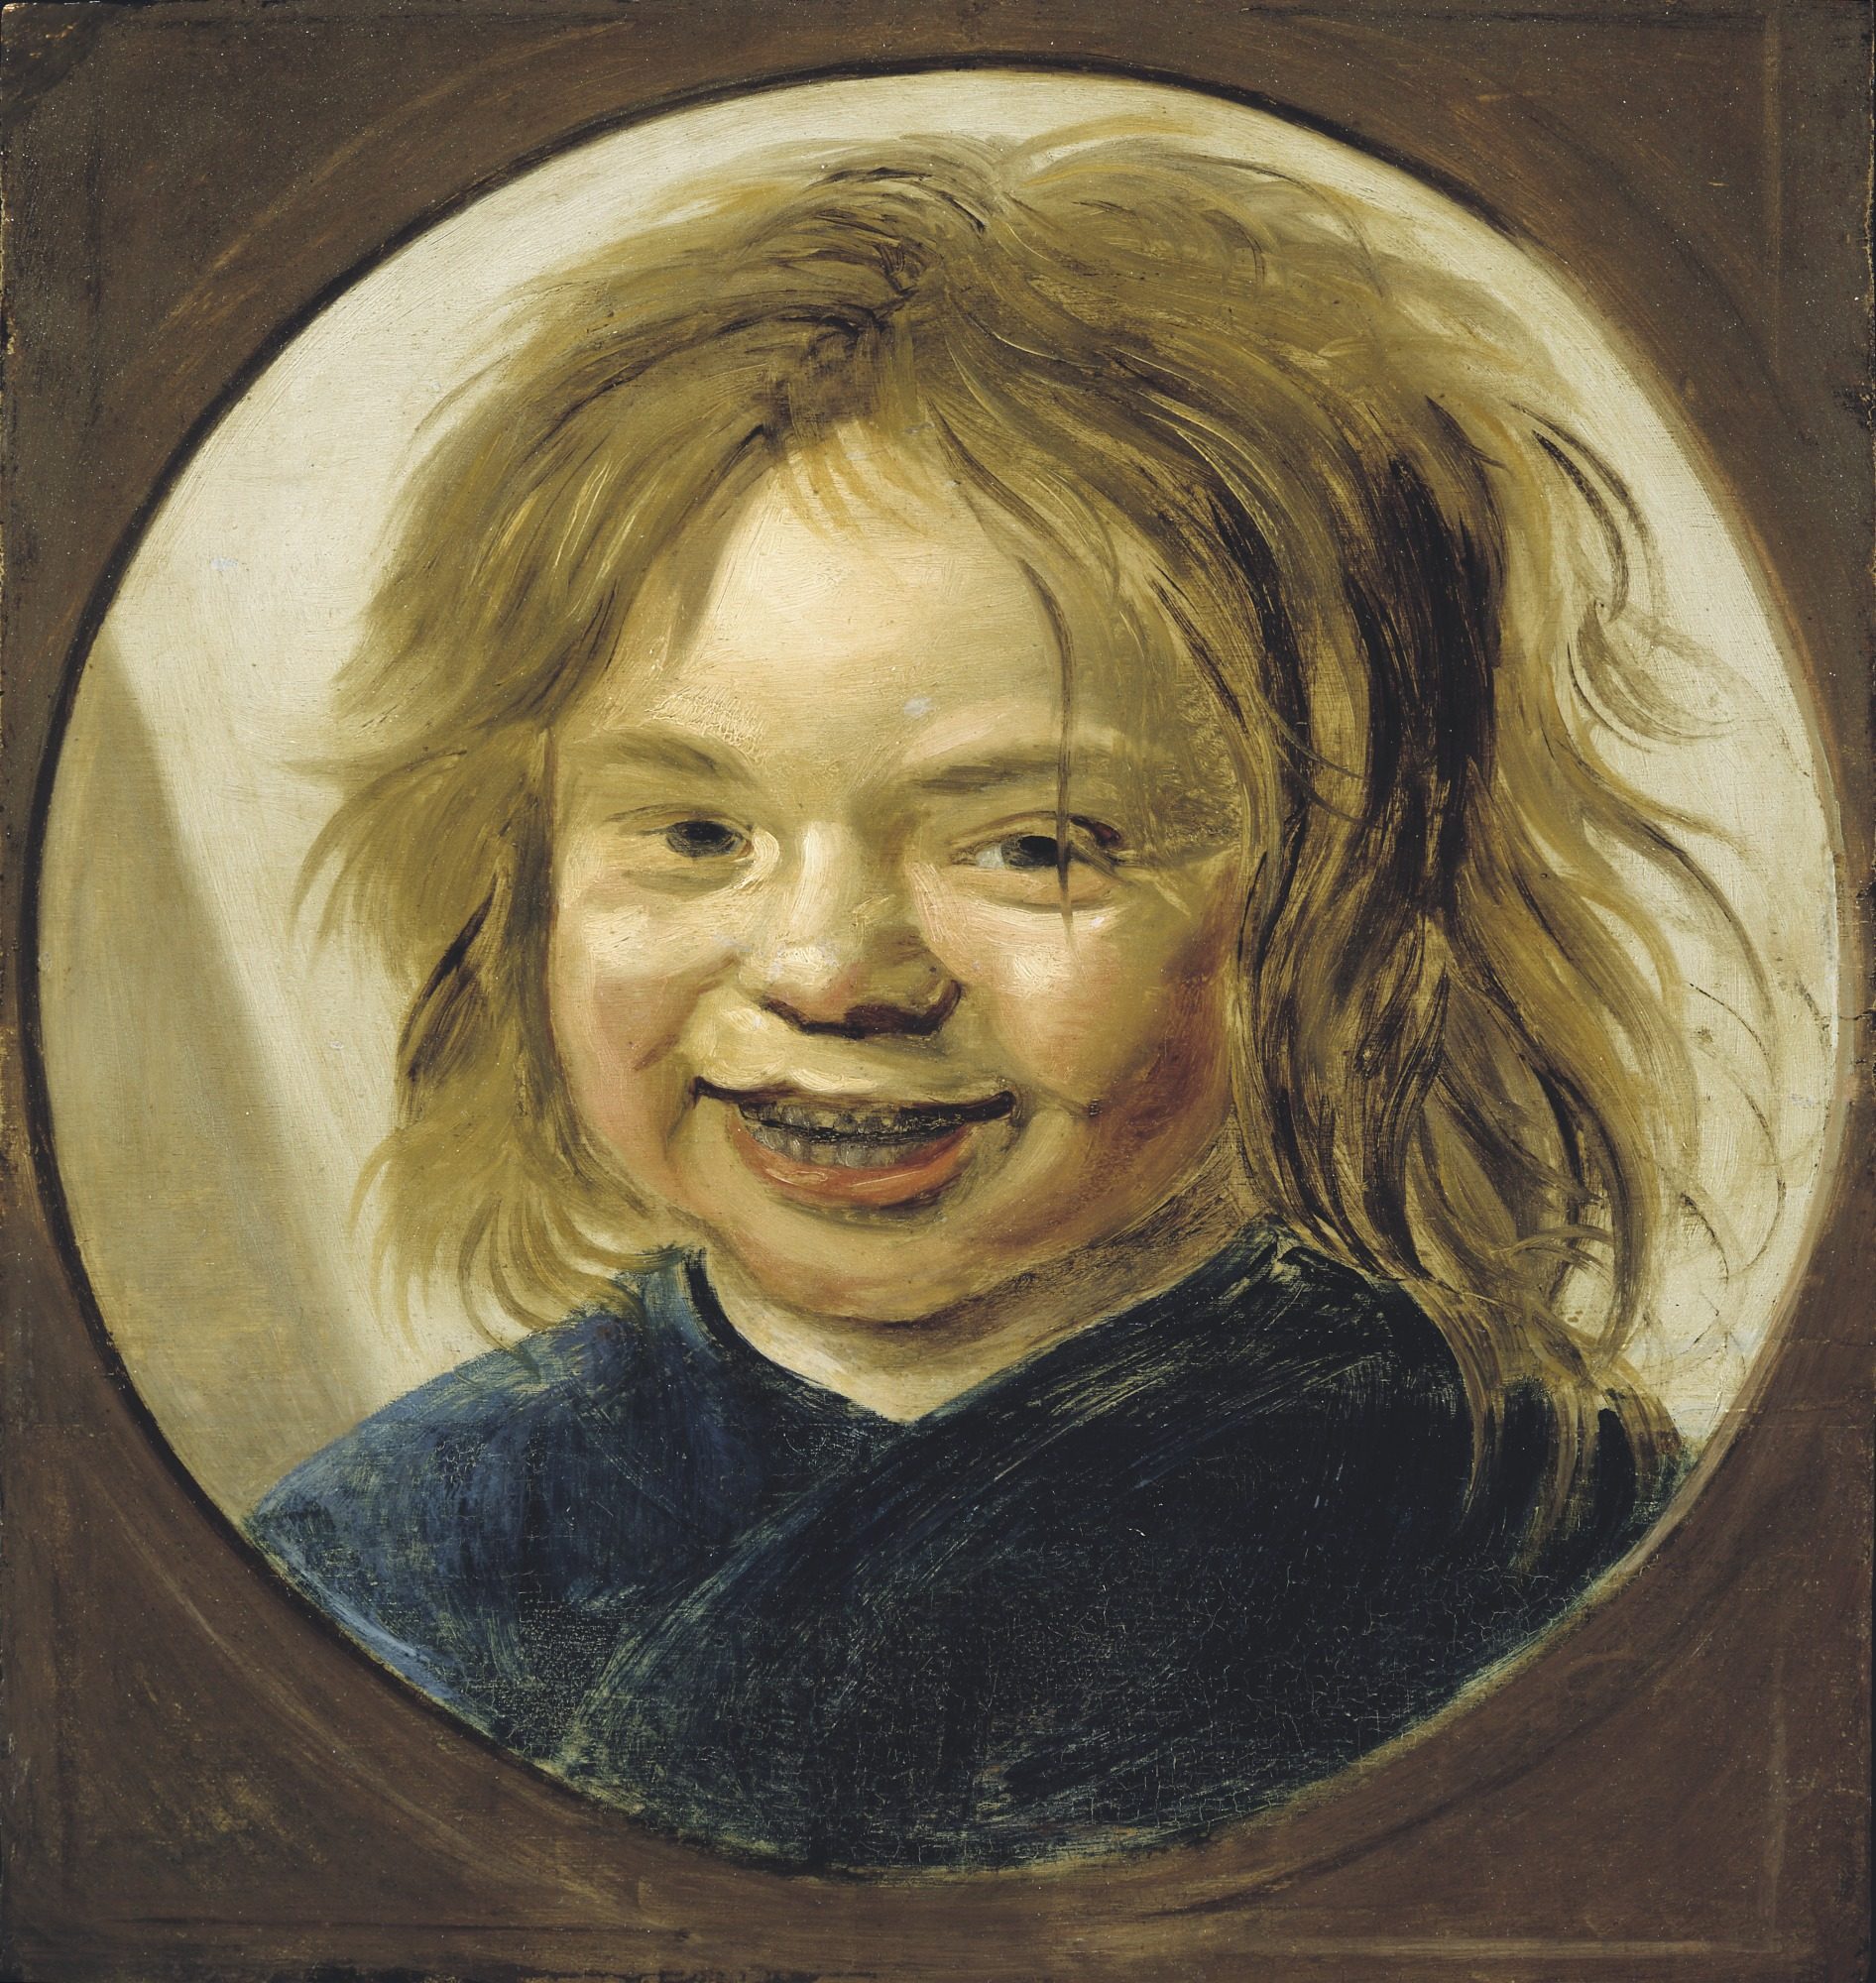 Frans Hals, Laughing Boy, 17th Century, Oil on oak panel. Detroit Institute of Arts.